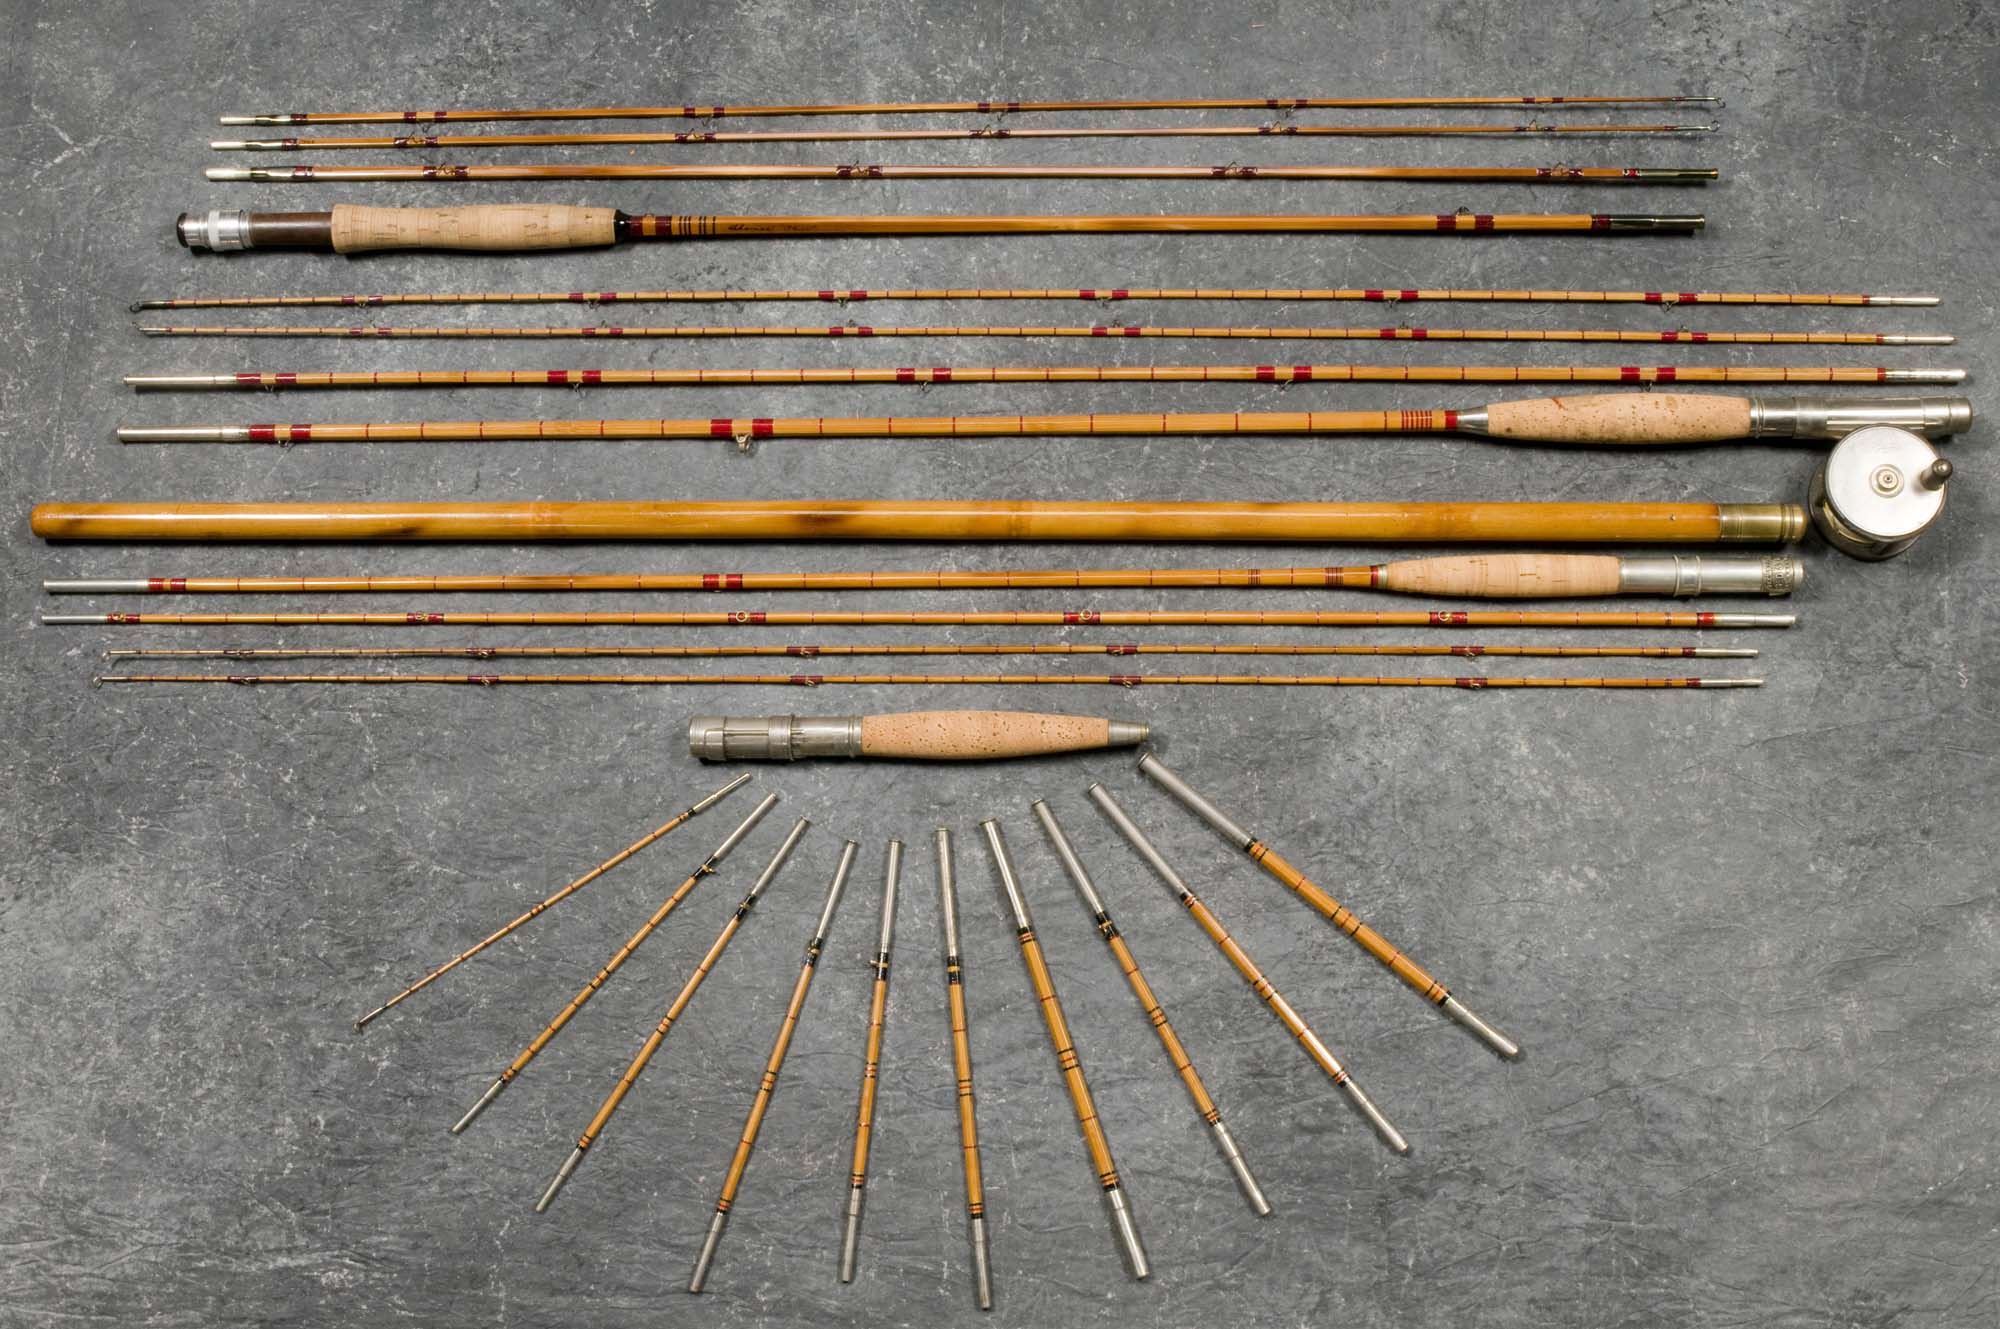 Hap moore antiques auctions may 31 2008 for Old fishing poles